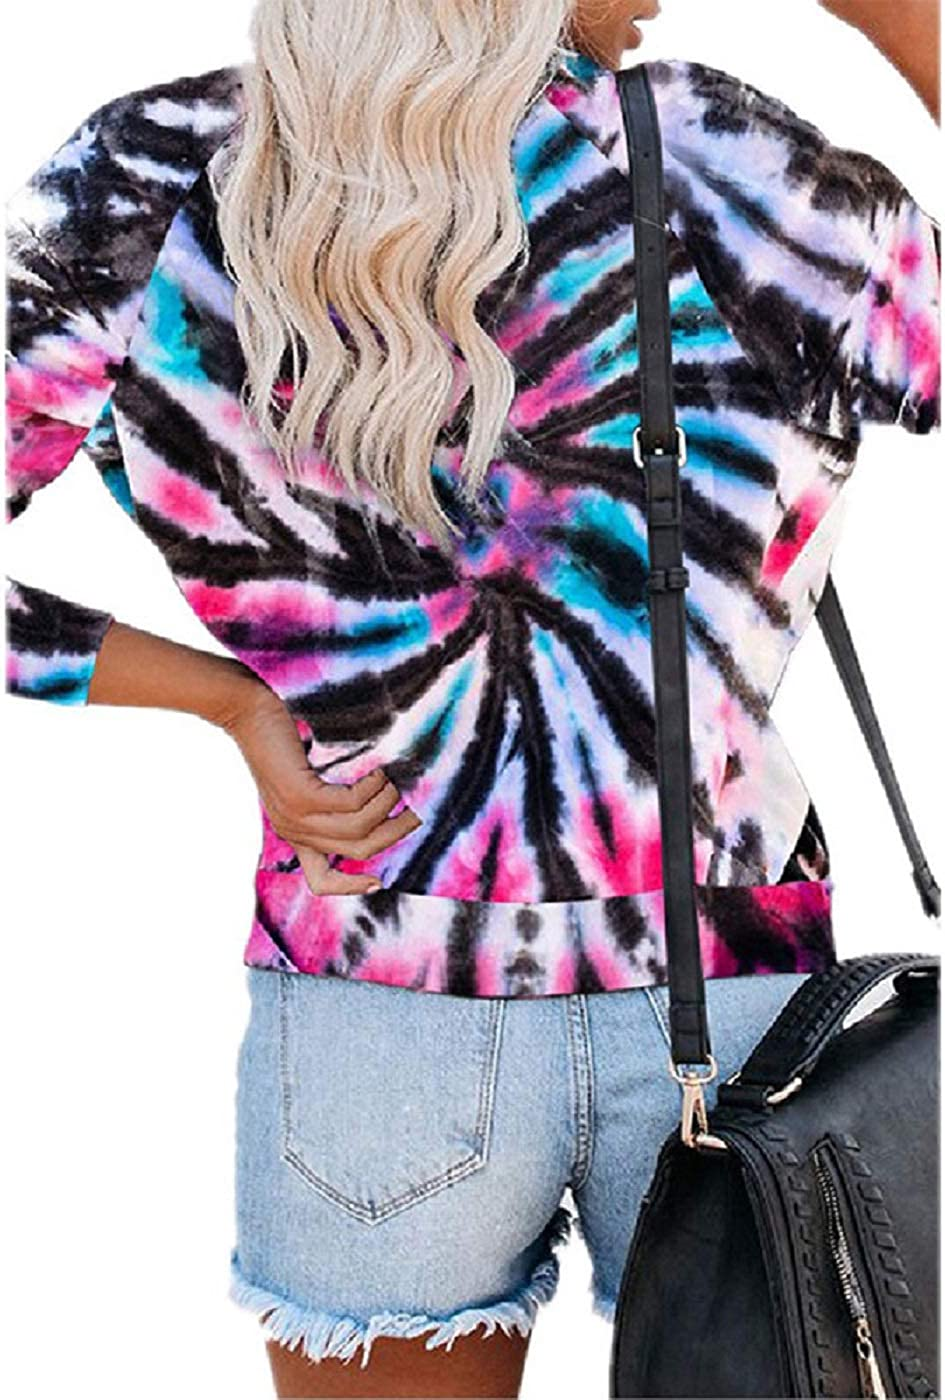 Womenss Casual Pullover Blouses Tops Long Sleeve Tie Dye Sweatshirt Crew Neck Loose T Shirts